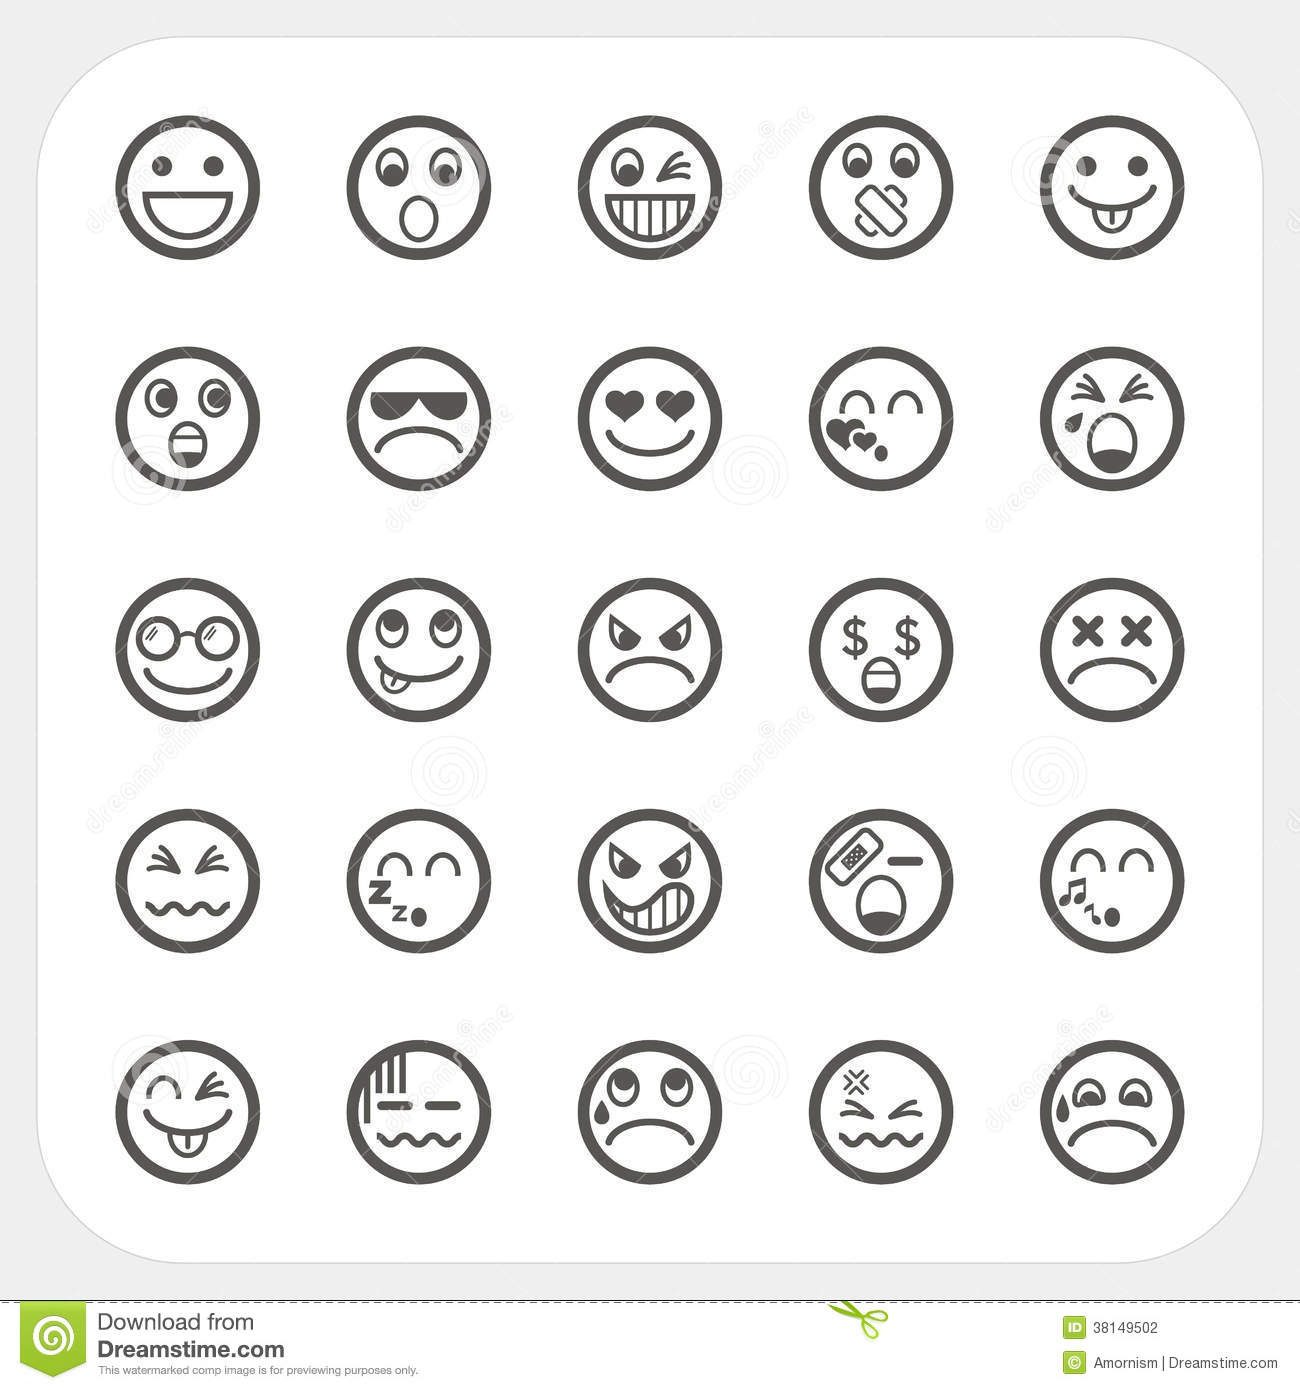 Icones De Visage D Emotion Reglees Illustration De Vecteur